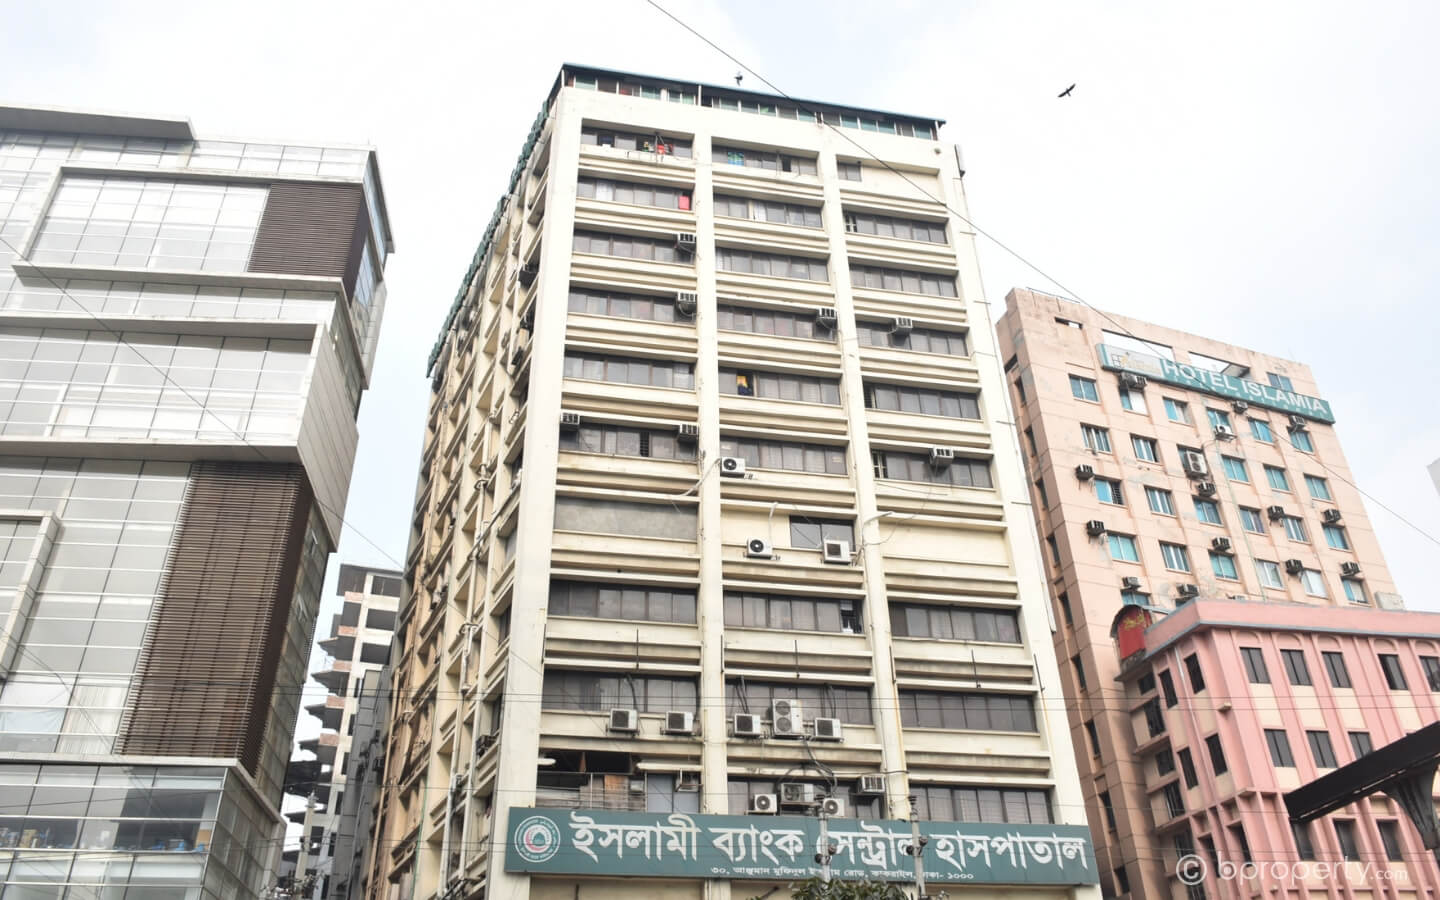 Islami Bank Hospital is one of the oldest hospitals in Bangladesh